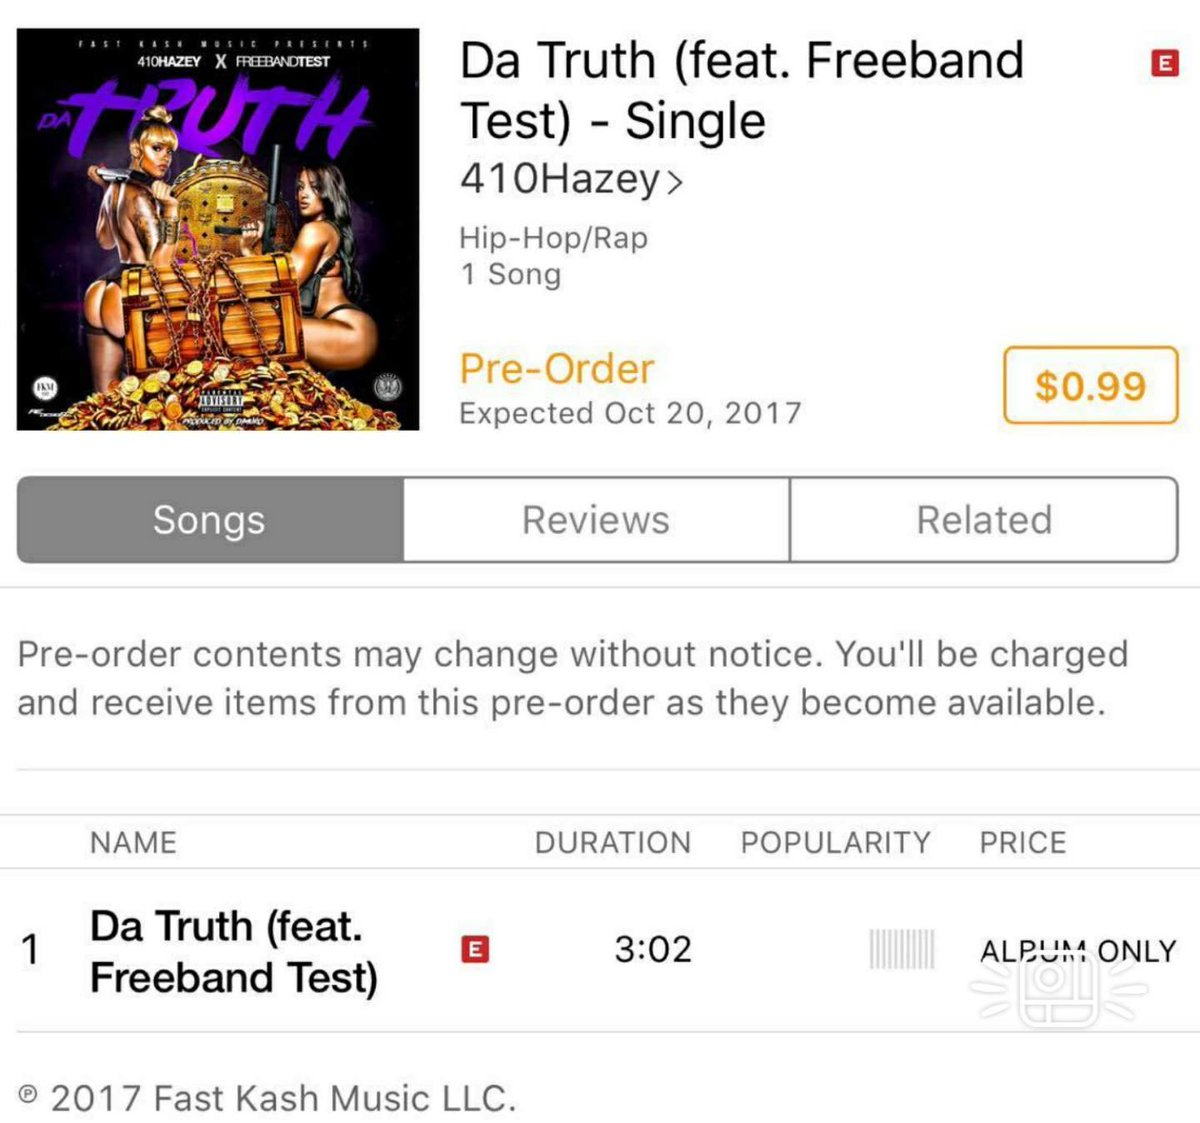 Go pre order. Da Truth by @410Hazey featuring @Test410_ is . You won&#39;t regret it my friends. #fkm #music #hiphop #rap #truth #NewMusic<br>http://pic.twitter.com/IwxFgPLSrS